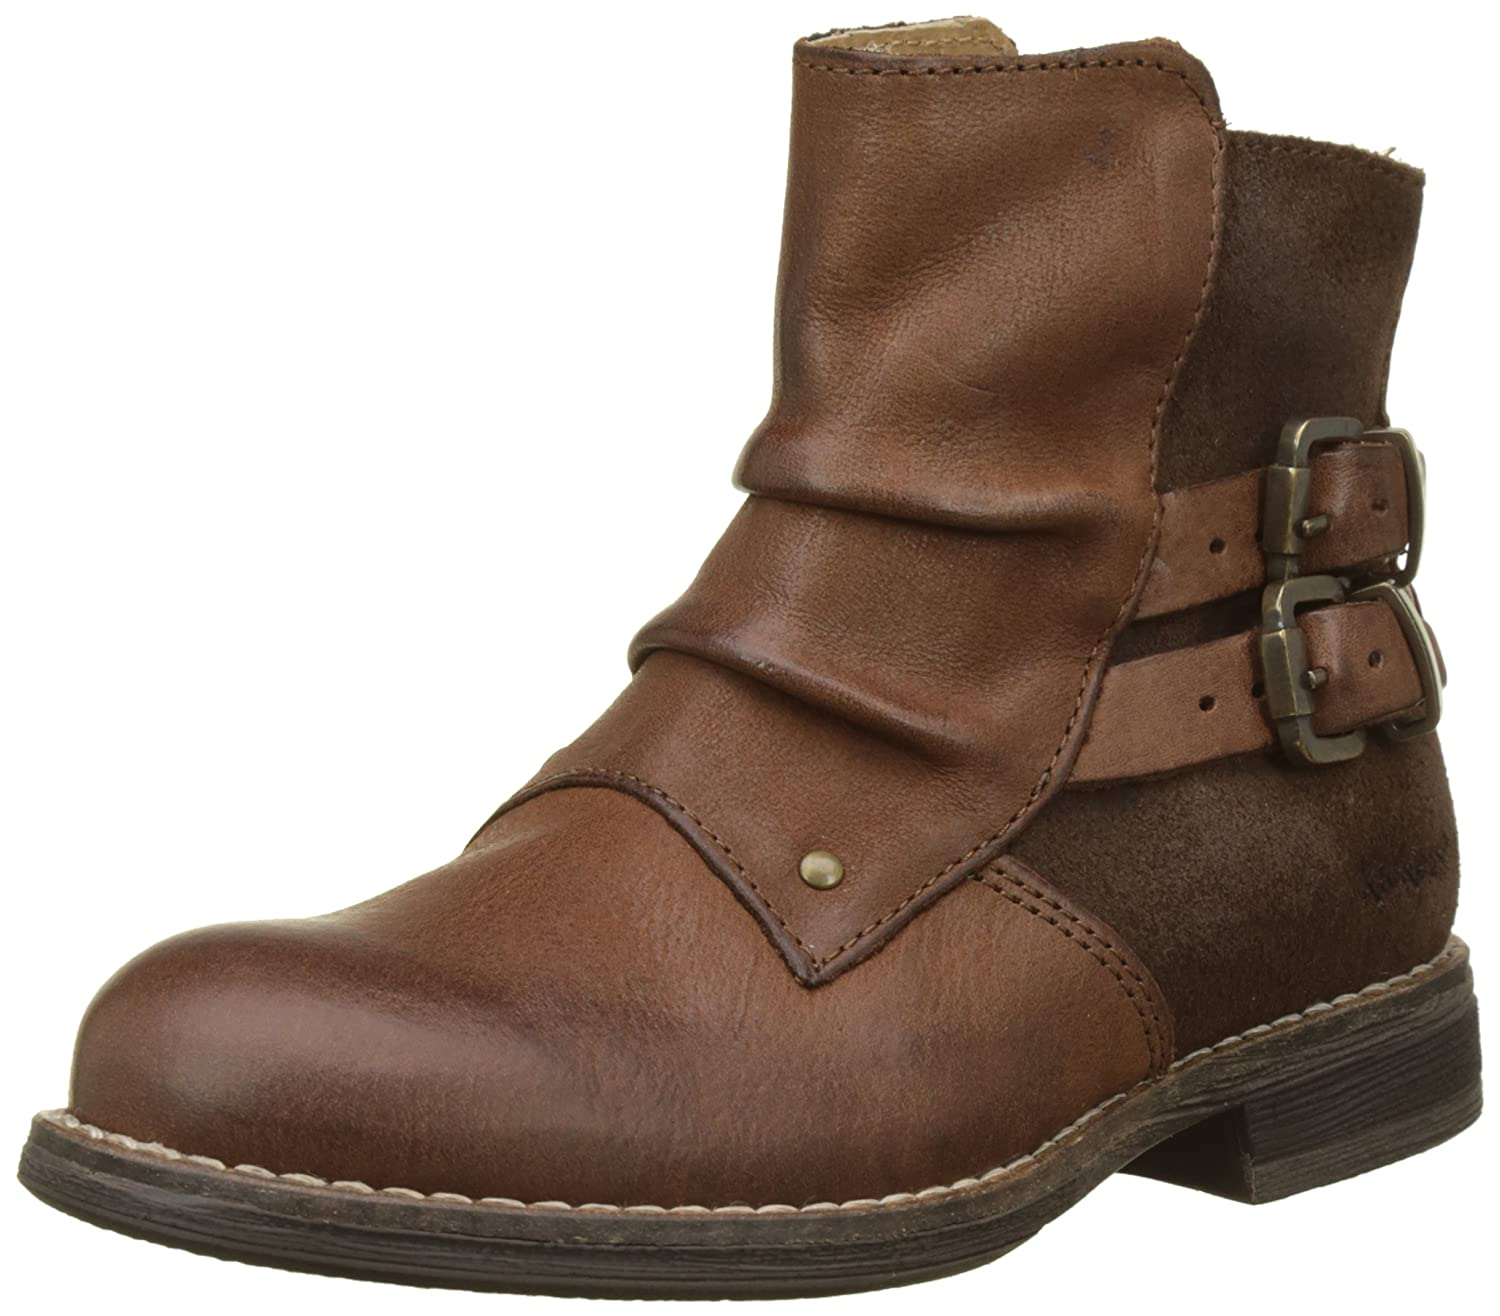 Kickers Smatchy Botines Fille